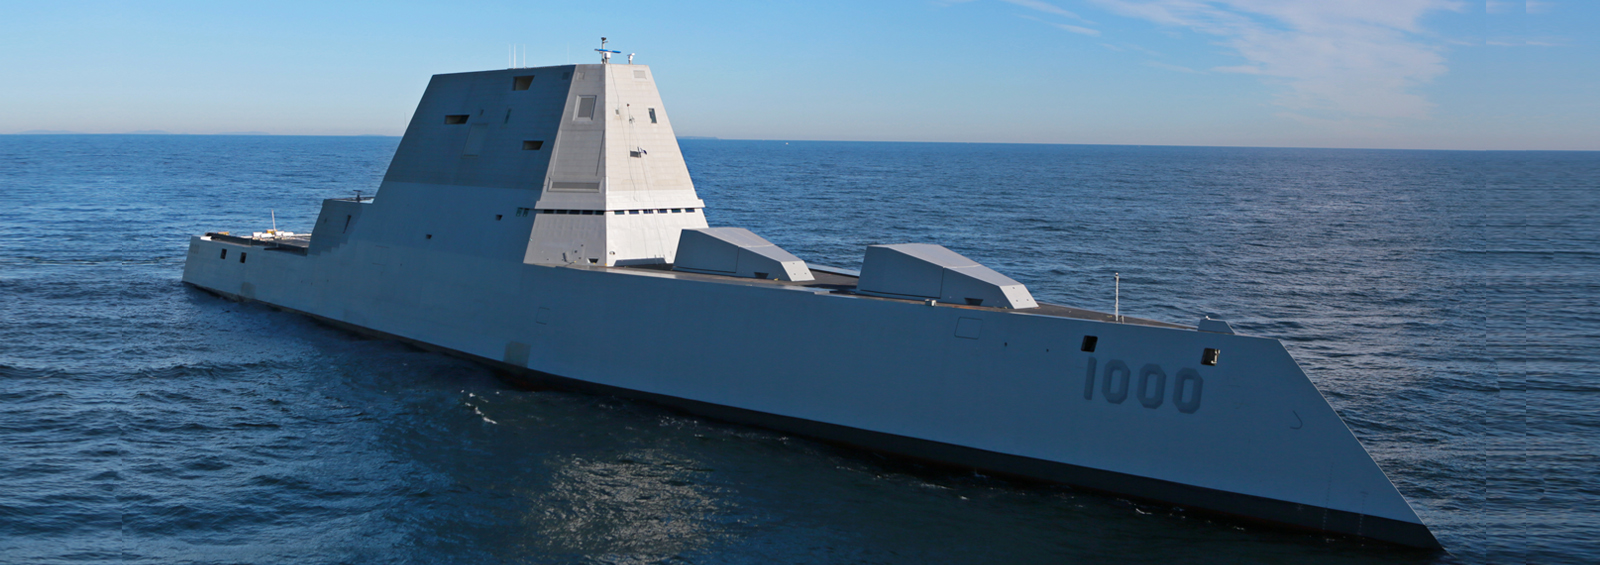 USS Zumwalt DGD-1000 Destroyer